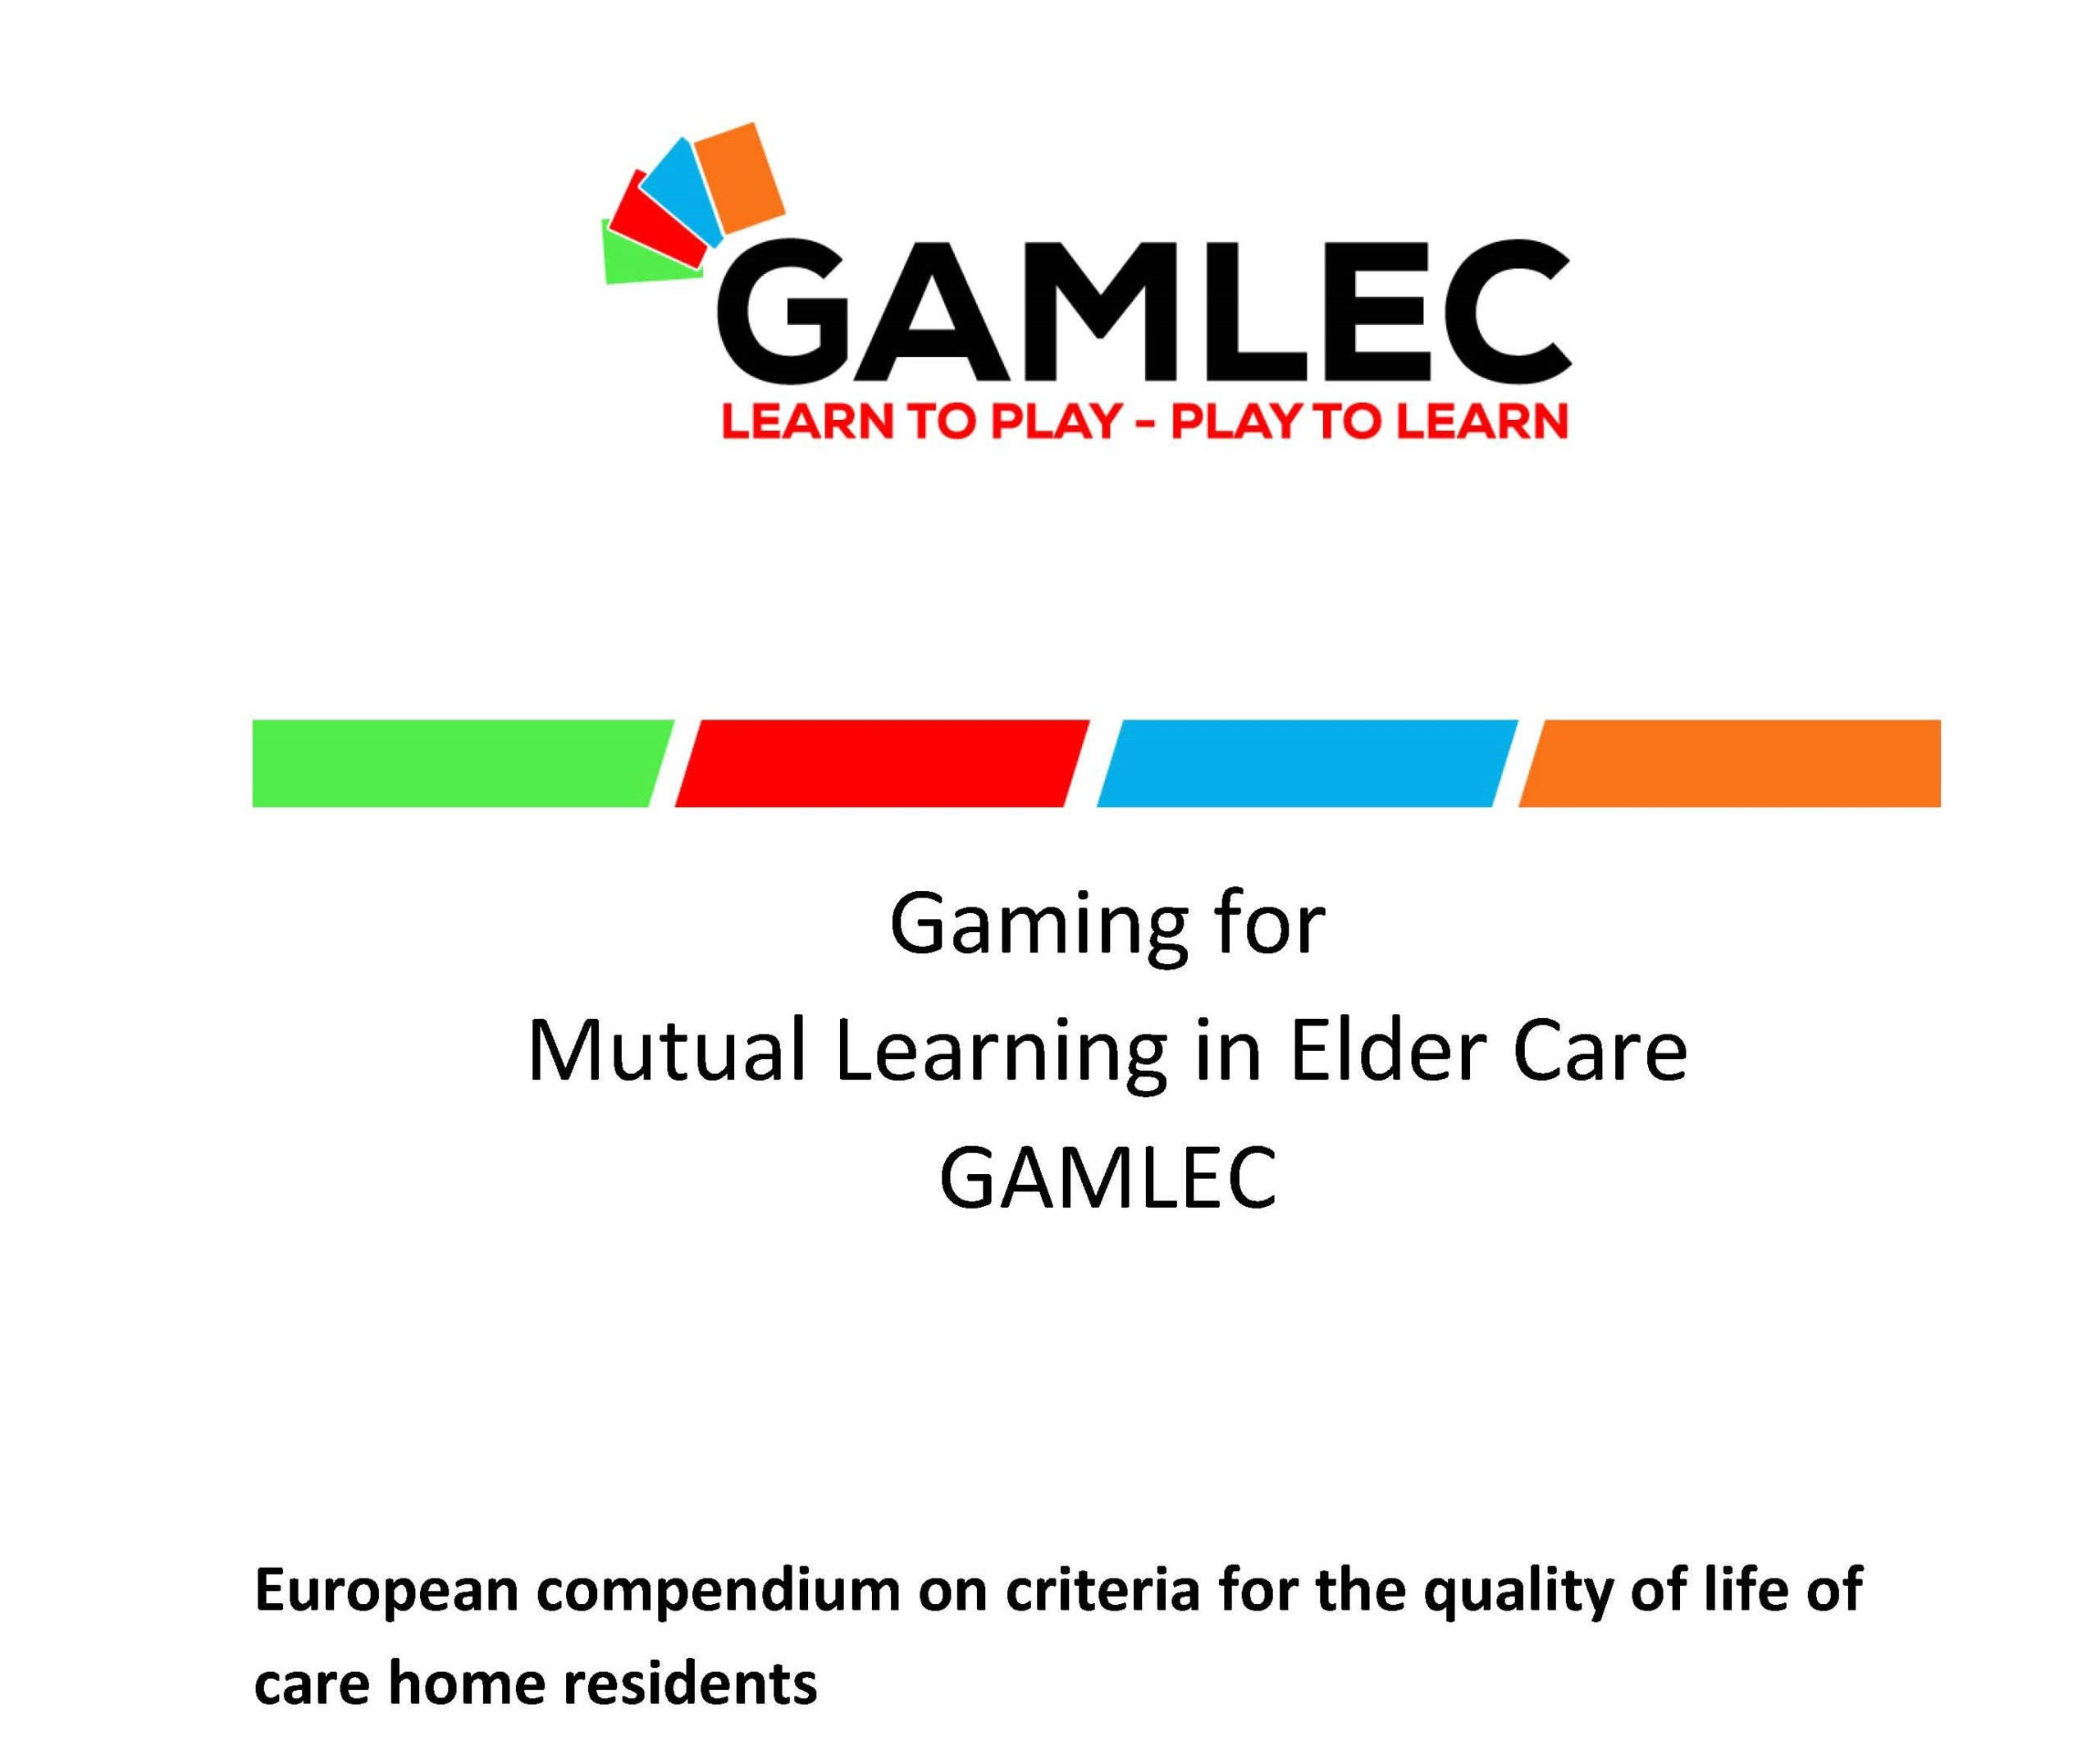 Now available: The European Compendium on Criteria for the Quality of Life of Care Home Residents (EN)